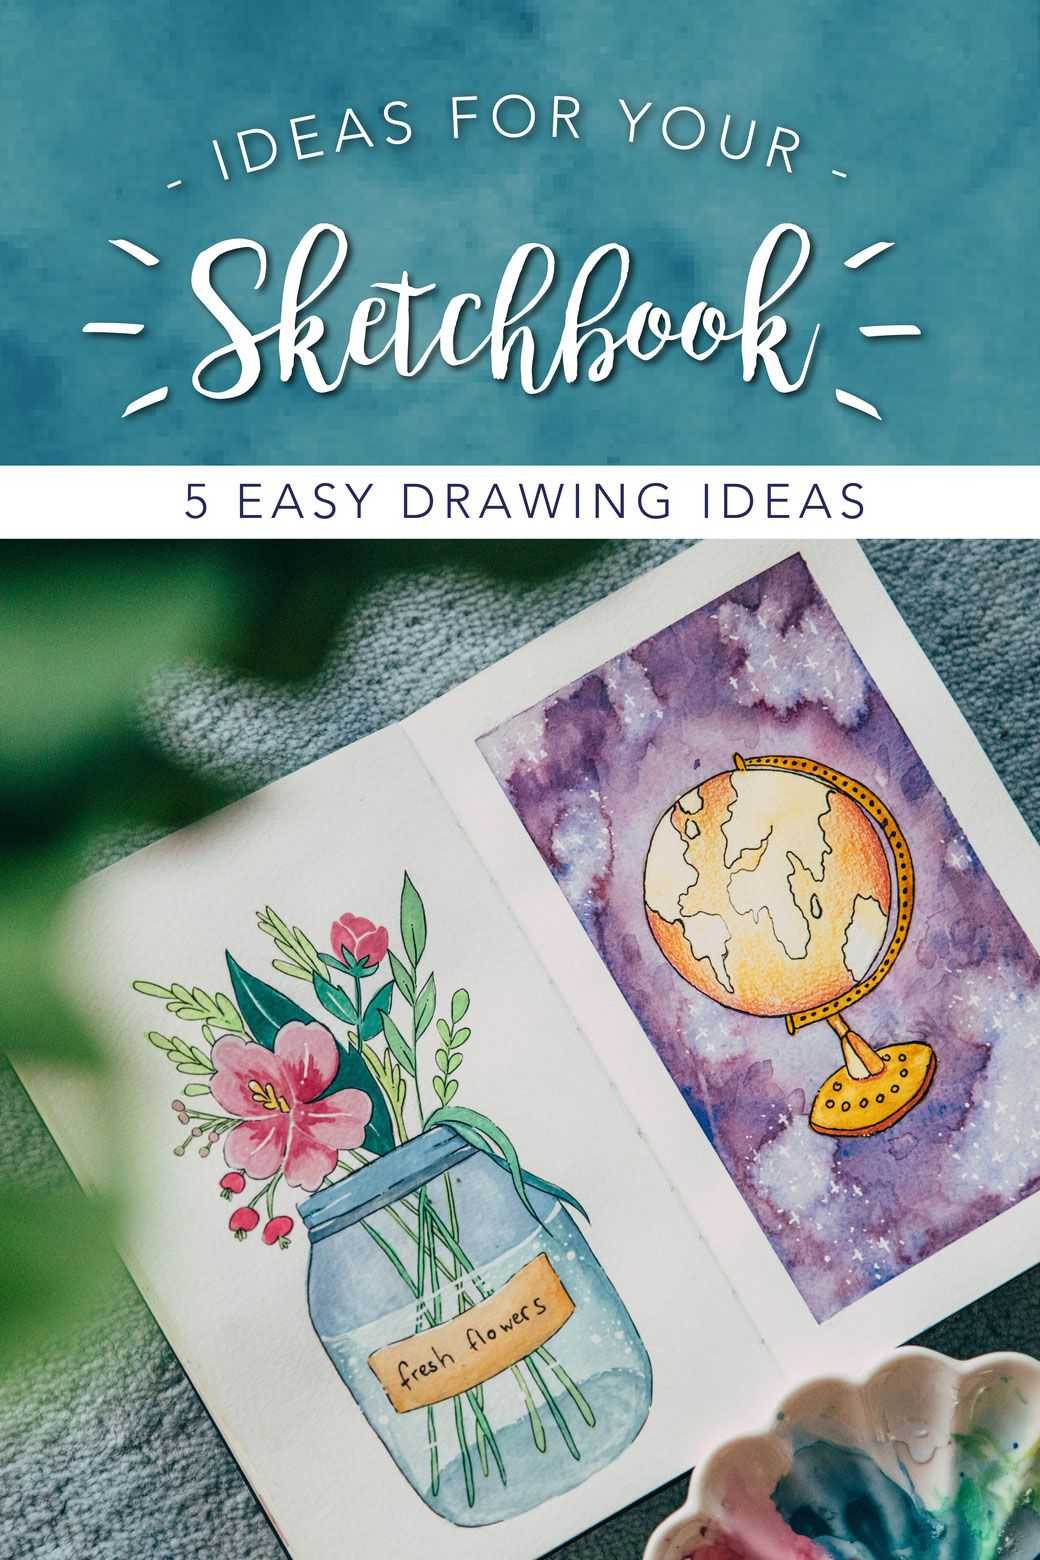 Sketchbook Ideas For Beginners And Artists With Images Sketch